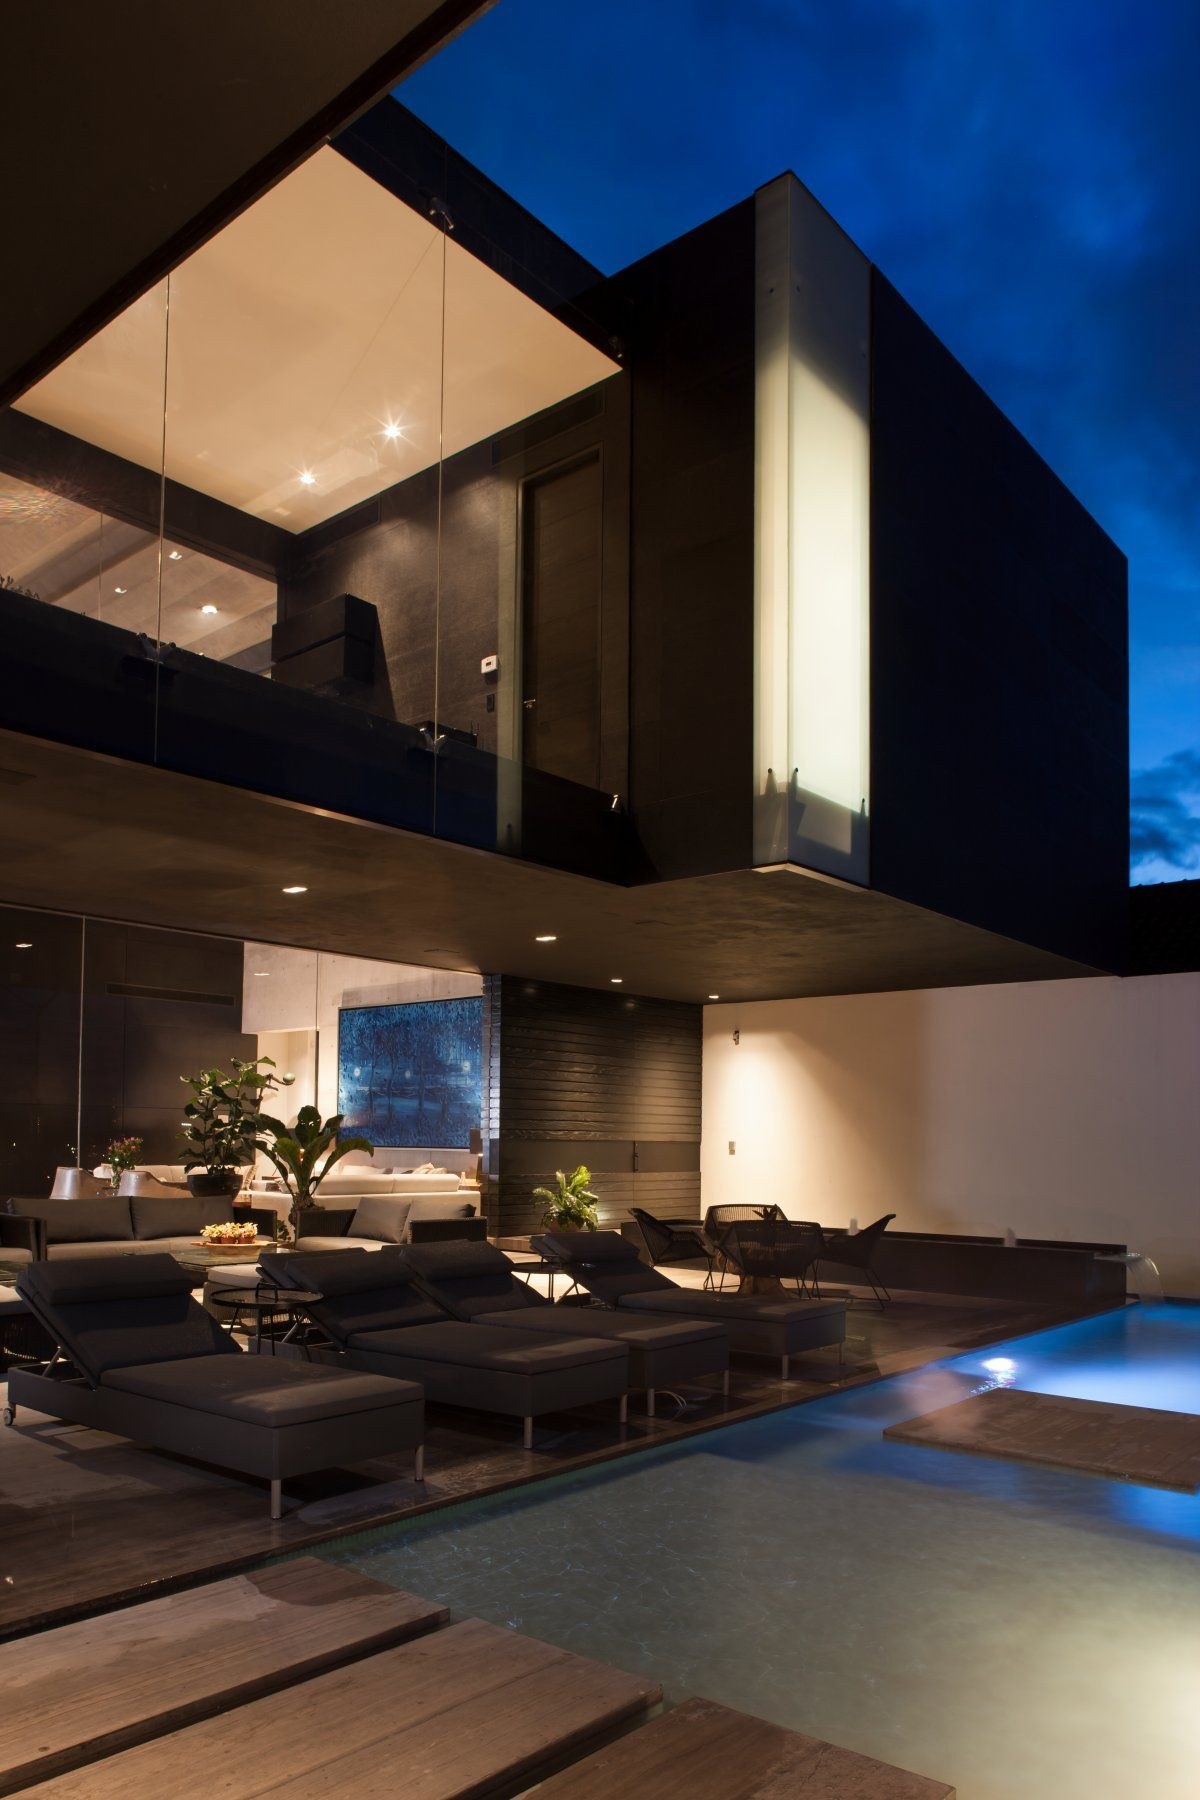 terrace lighting. Pool, Terrace, Lighting, Stylish Contemporary Home In Garza Garcia, Mexico Terrace Lighting R